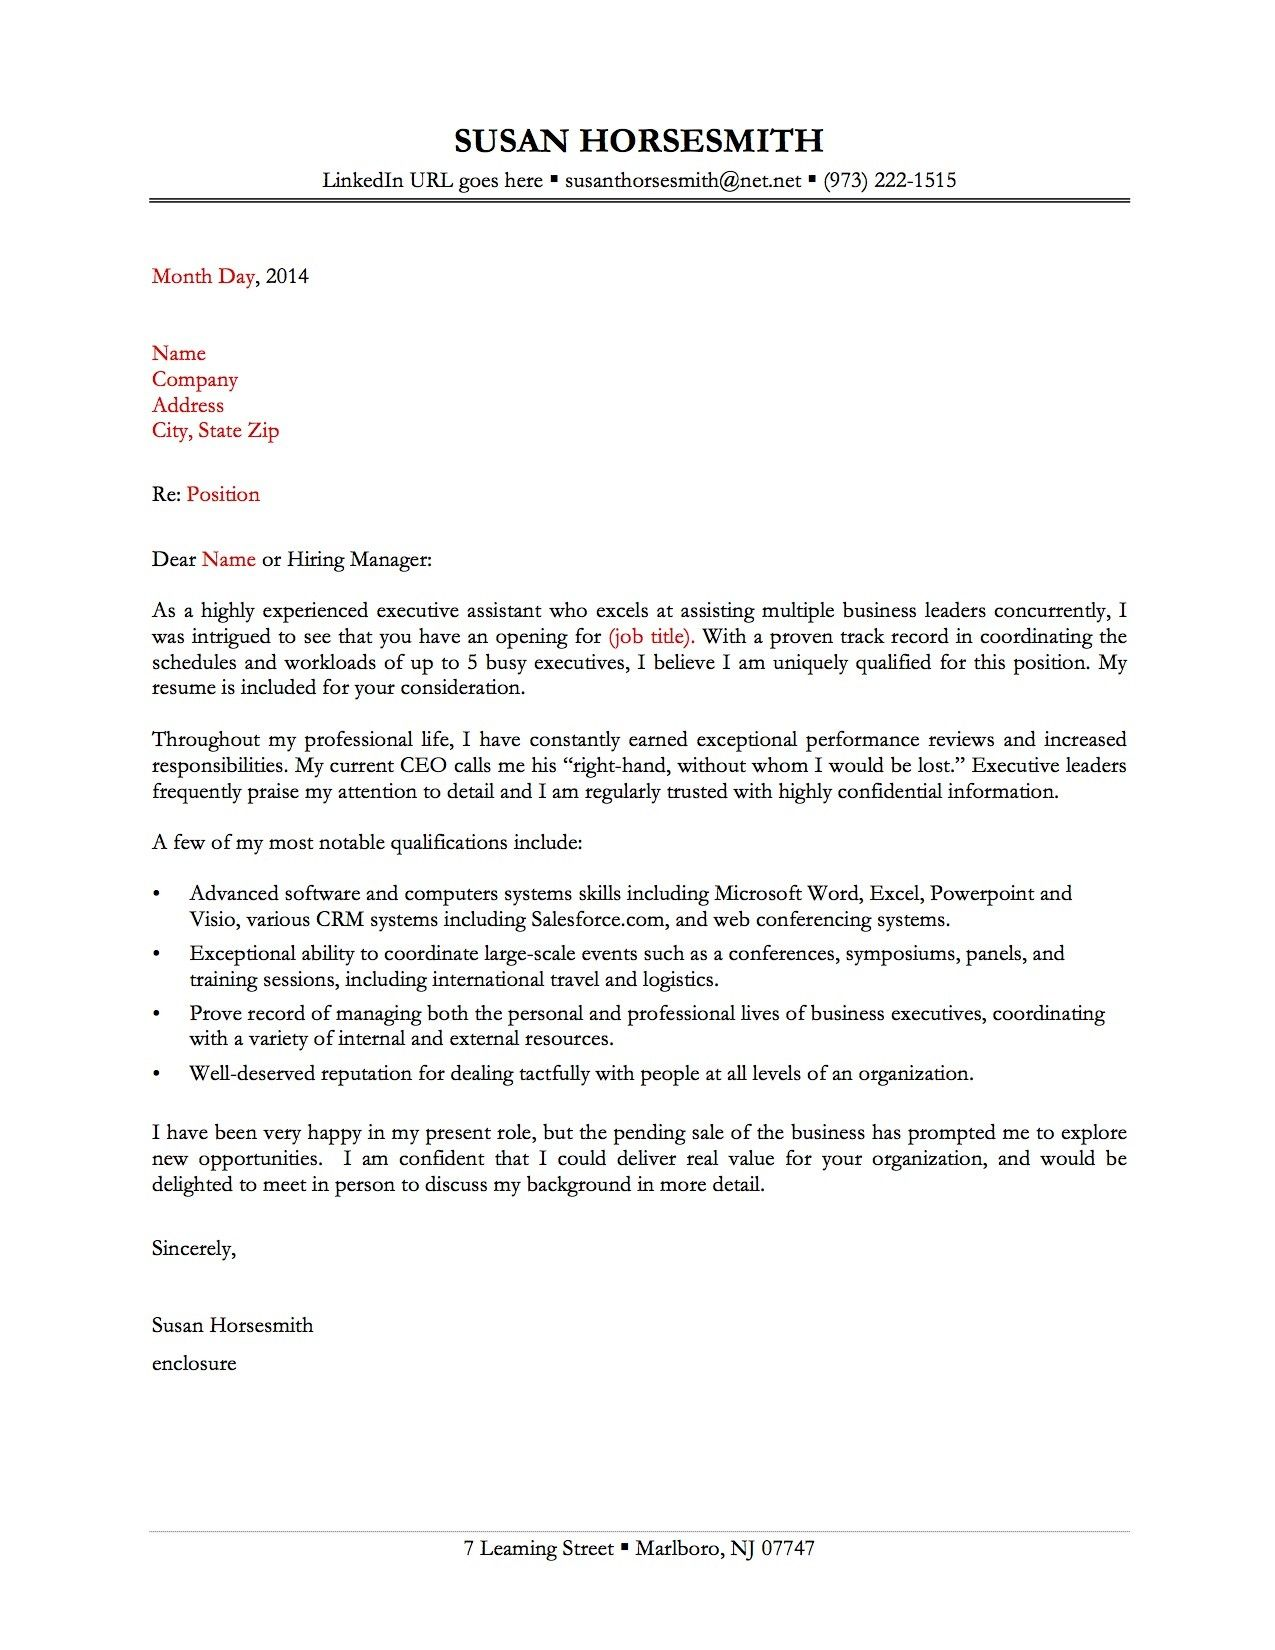 Valid Cover Letters Examples for Jobs Cover letter for